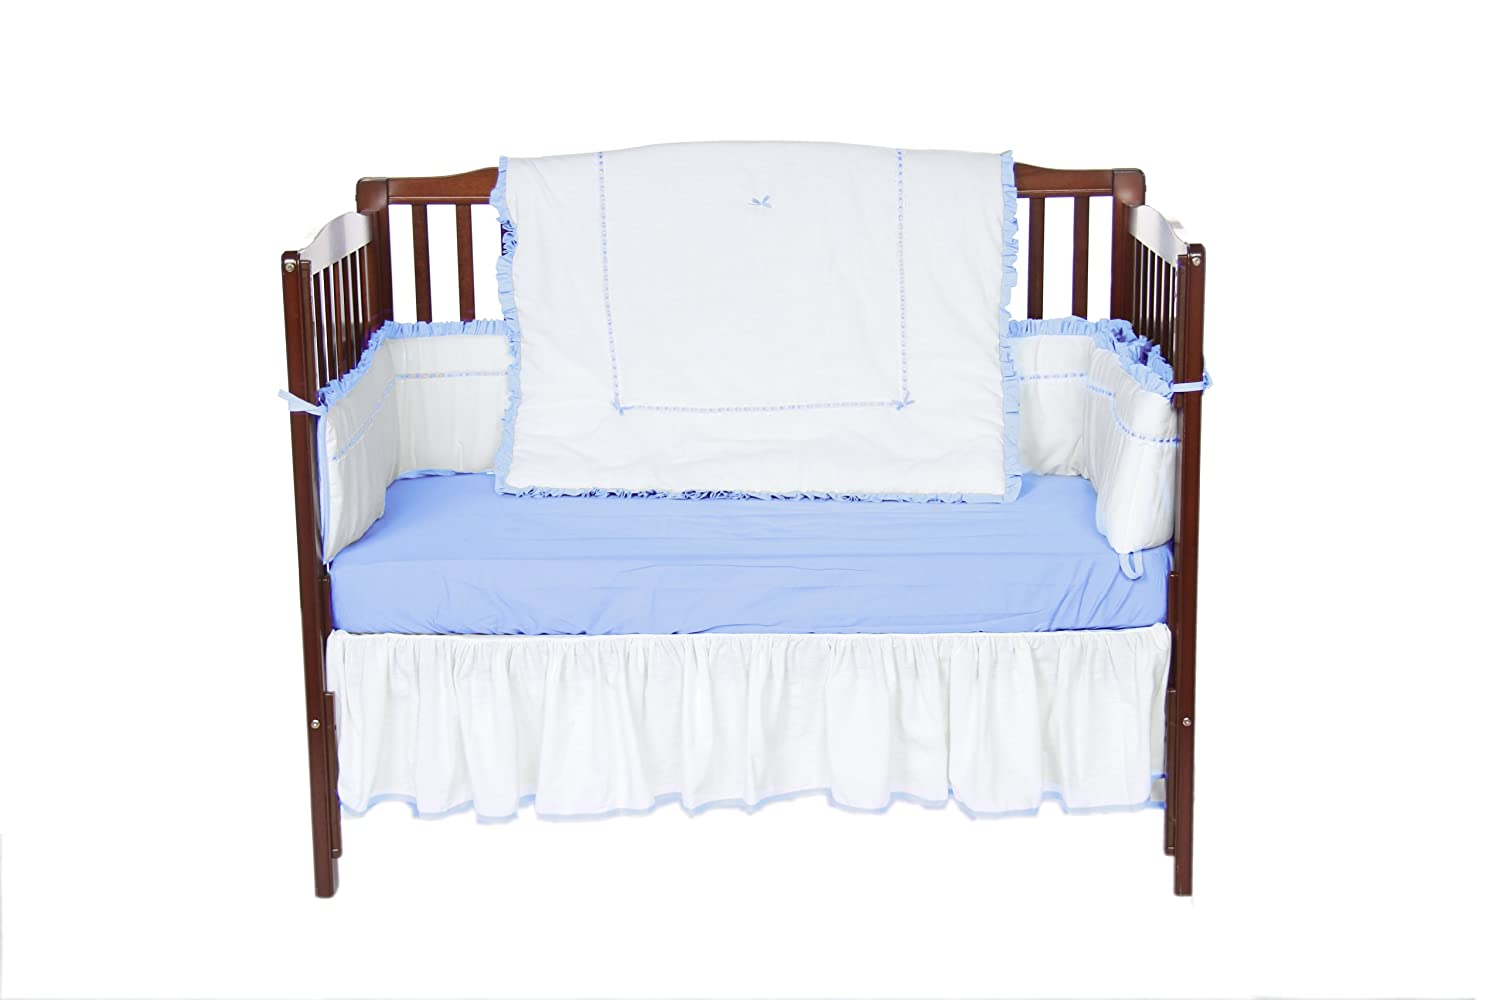 Baby Doll Bedding Unique Crib Bedding Set, Blue